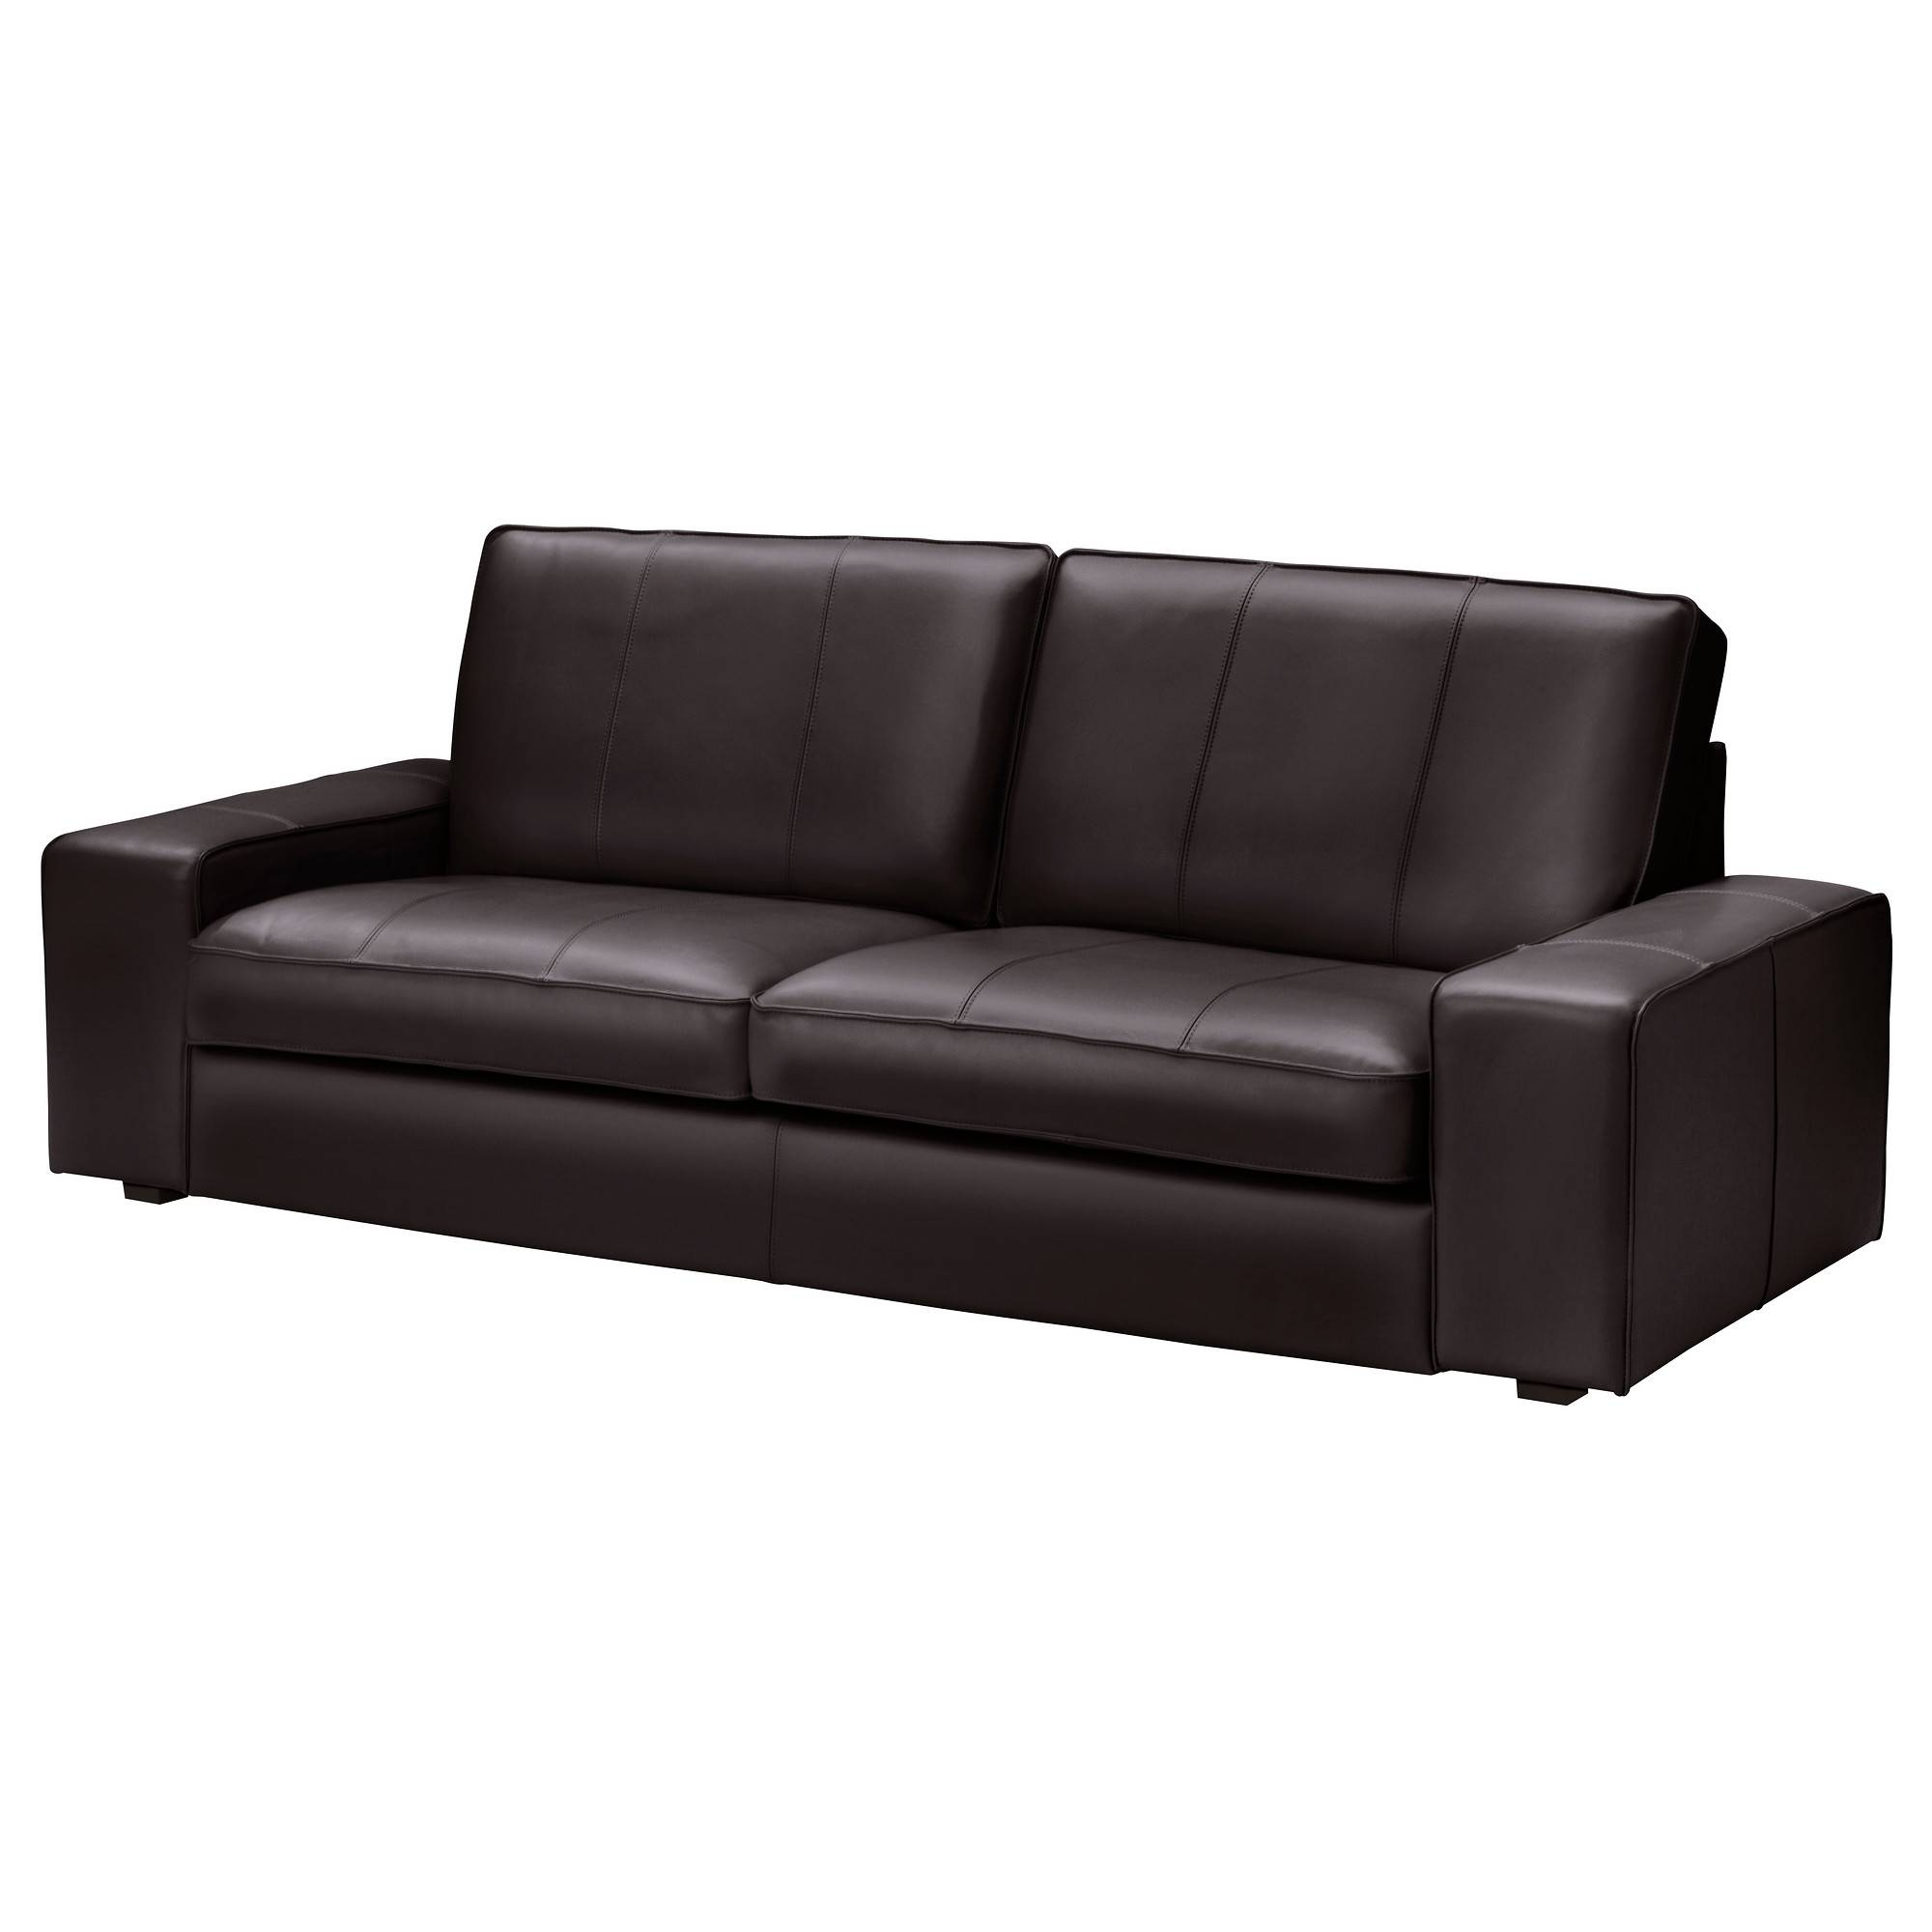 Leather/faux Leather Sofas - Ikea in Leather and Material Sofas (Image 16 of 30)